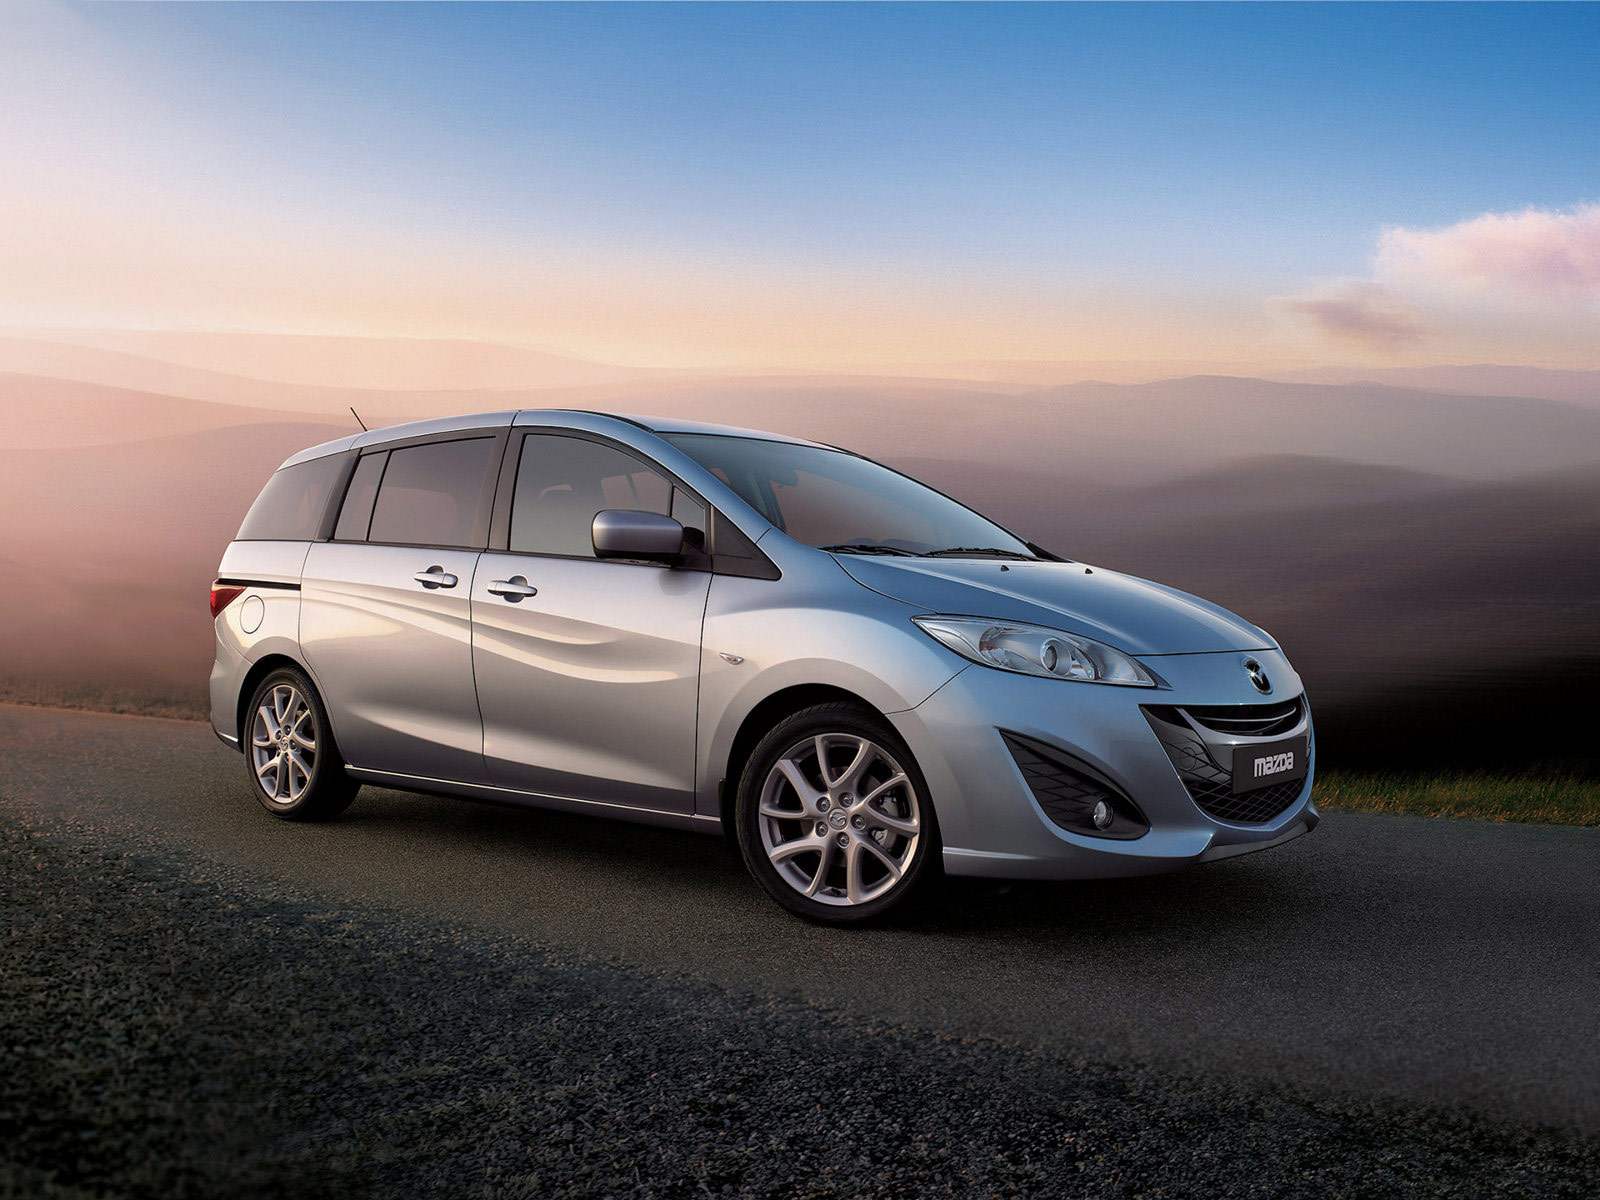 2011 Mazda 5 Japanese Car Pictures Accident Lawyers Info